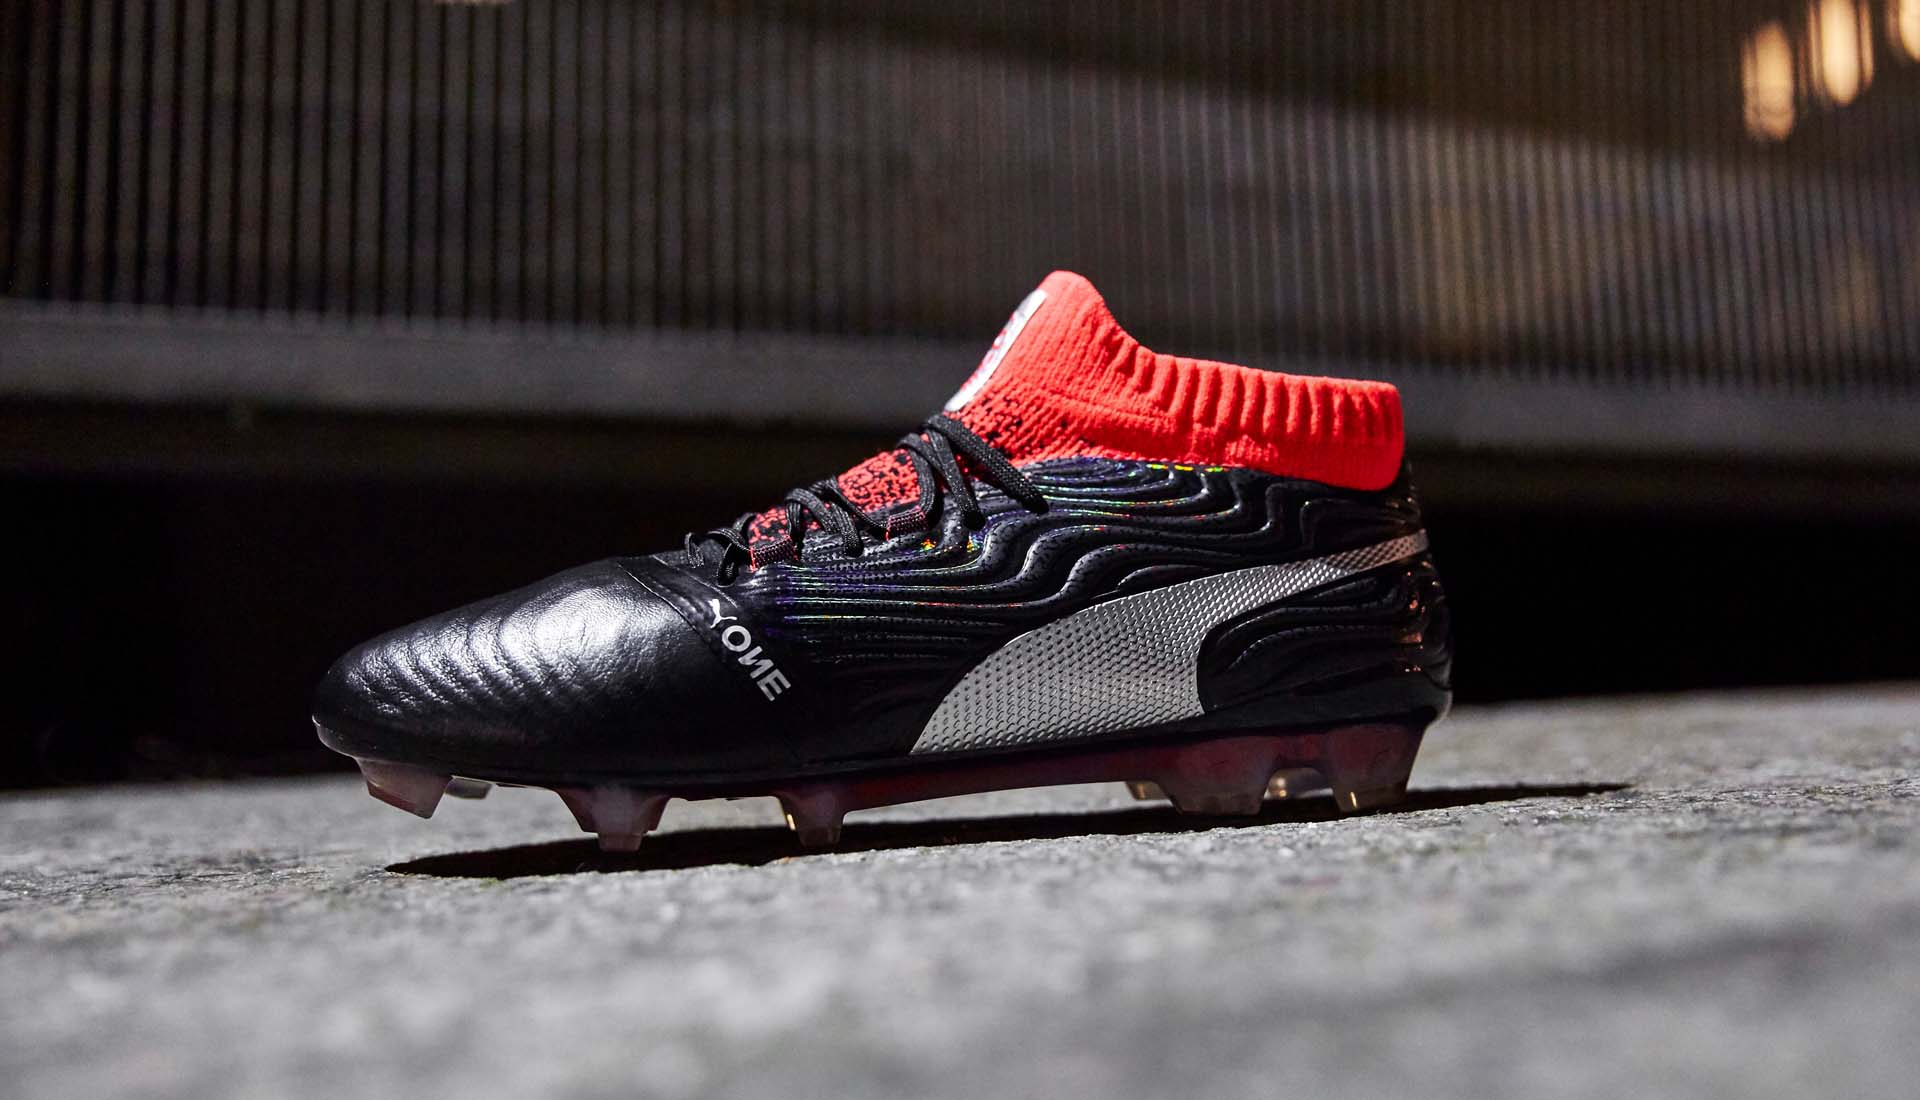 fe5e07fd6803 PUMA Launch the ONE 18.1 Football Boots - SoccerBible